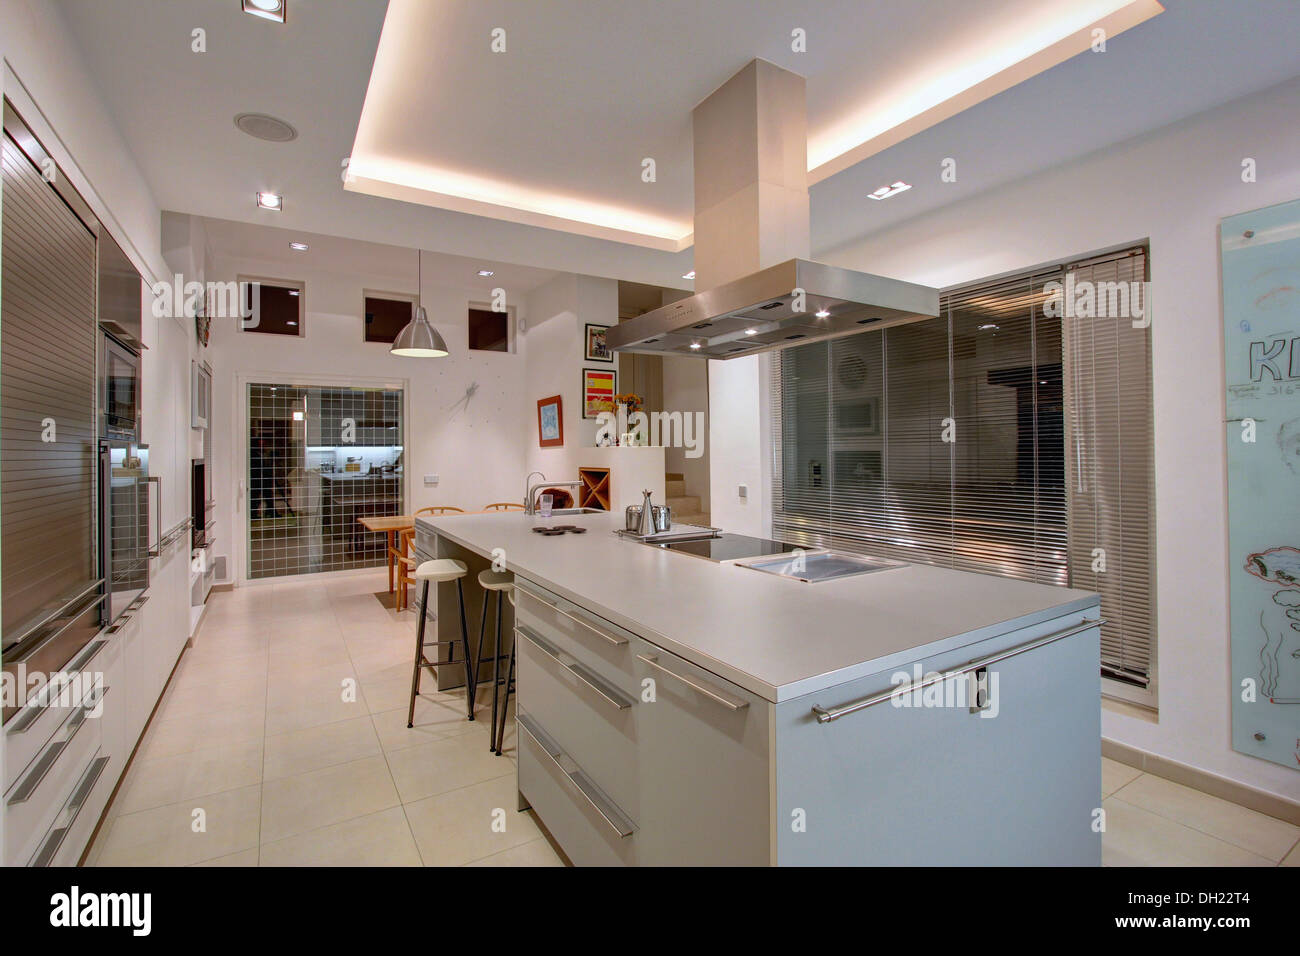 Extractor Above Hob In Island Unit In Large Modern Spanish Apartment Stock Photo Royalty Free